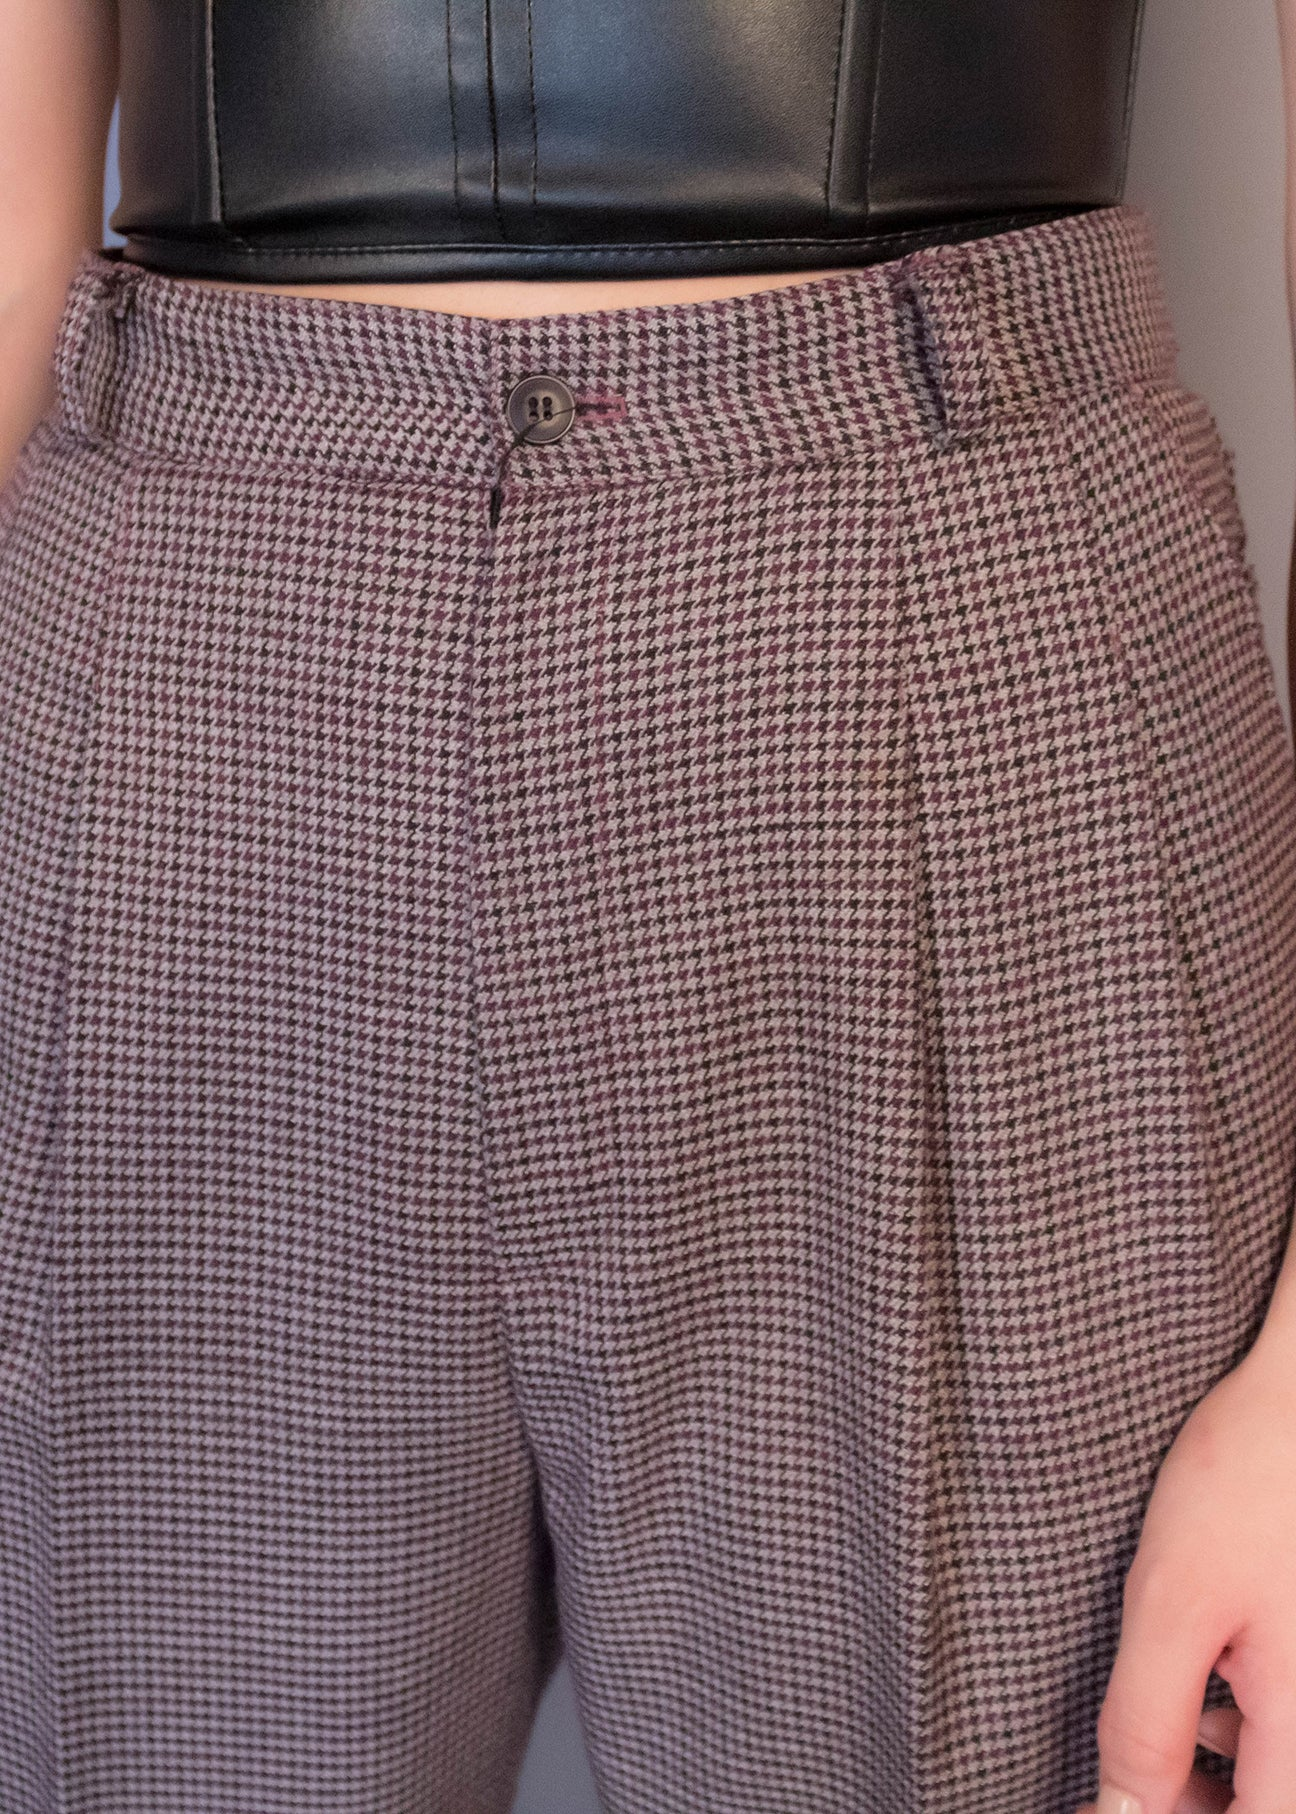 80s High-Waisted Houndstooth Trousers